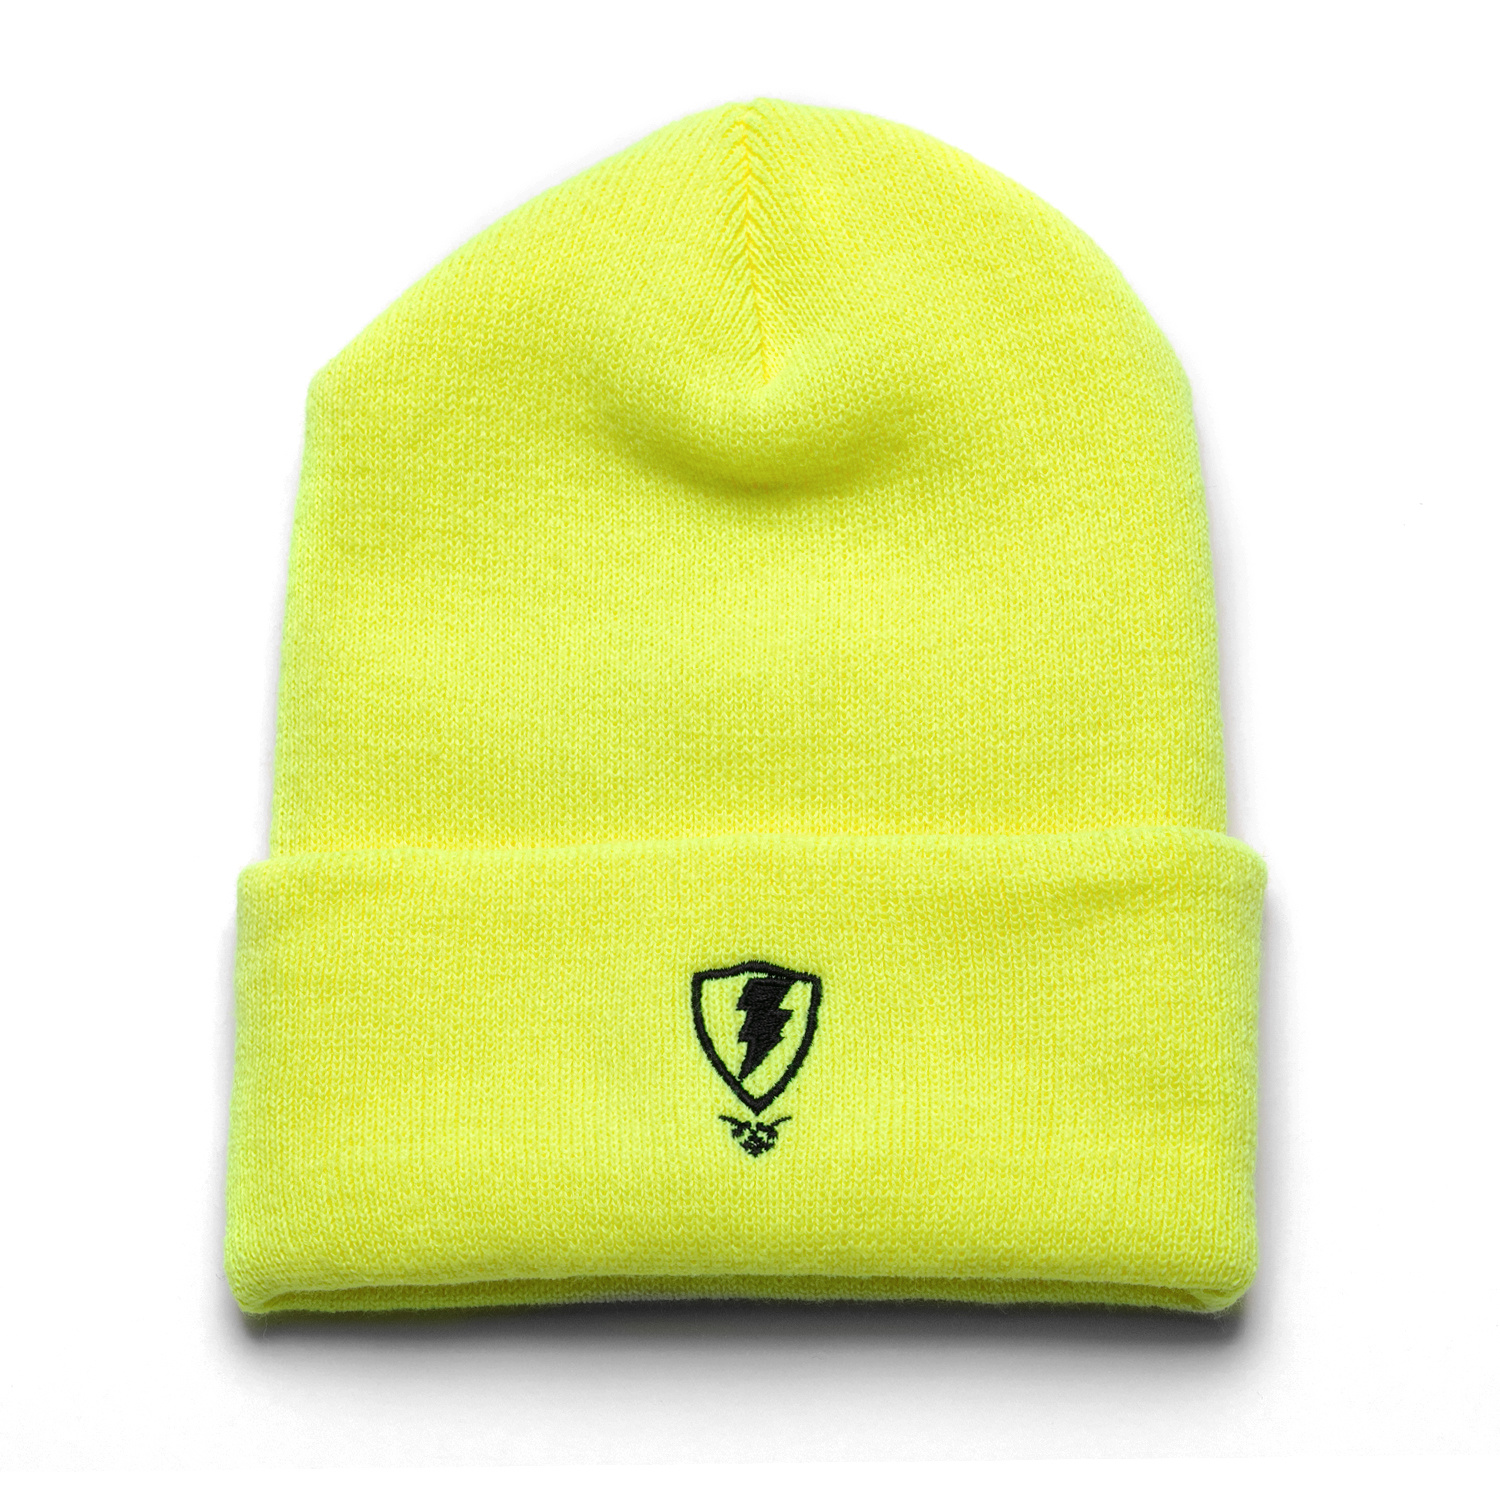 Jugrnaut Jugrnaut Chi Everywhere / Shield Thinsullate Beanie Safety Yellow